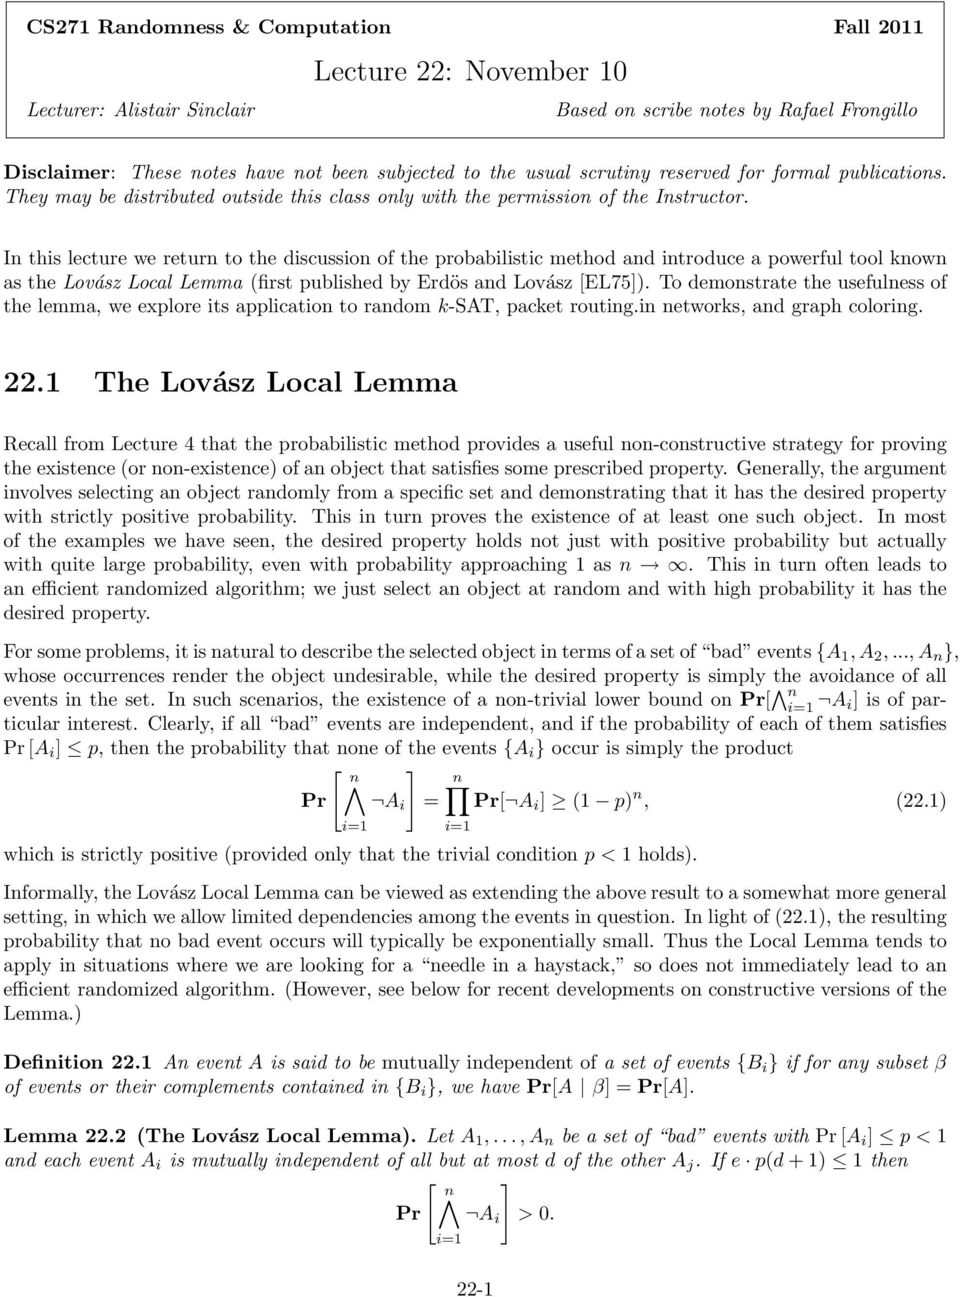 In this lecture we return to the discussion of the probabilistic method and introduce a powerful tool known as the Lovász Local Lemma (first published by Erdös and Lovász [EL75).